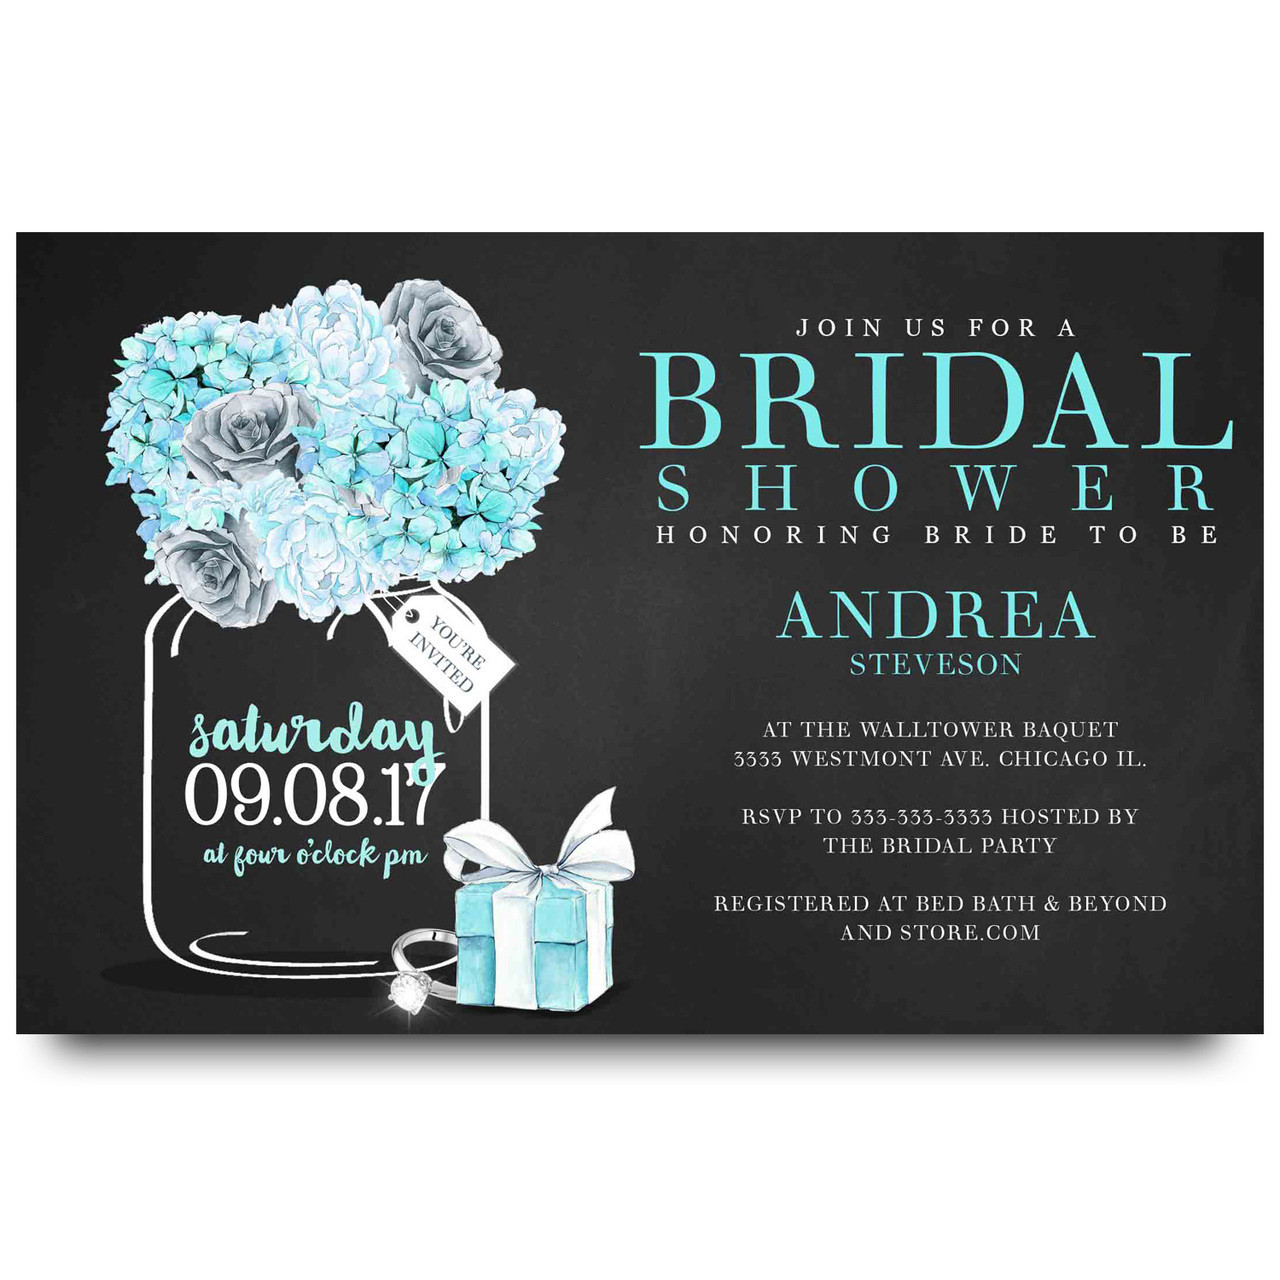 Tiffanys bridal shower invitation mason jar 2